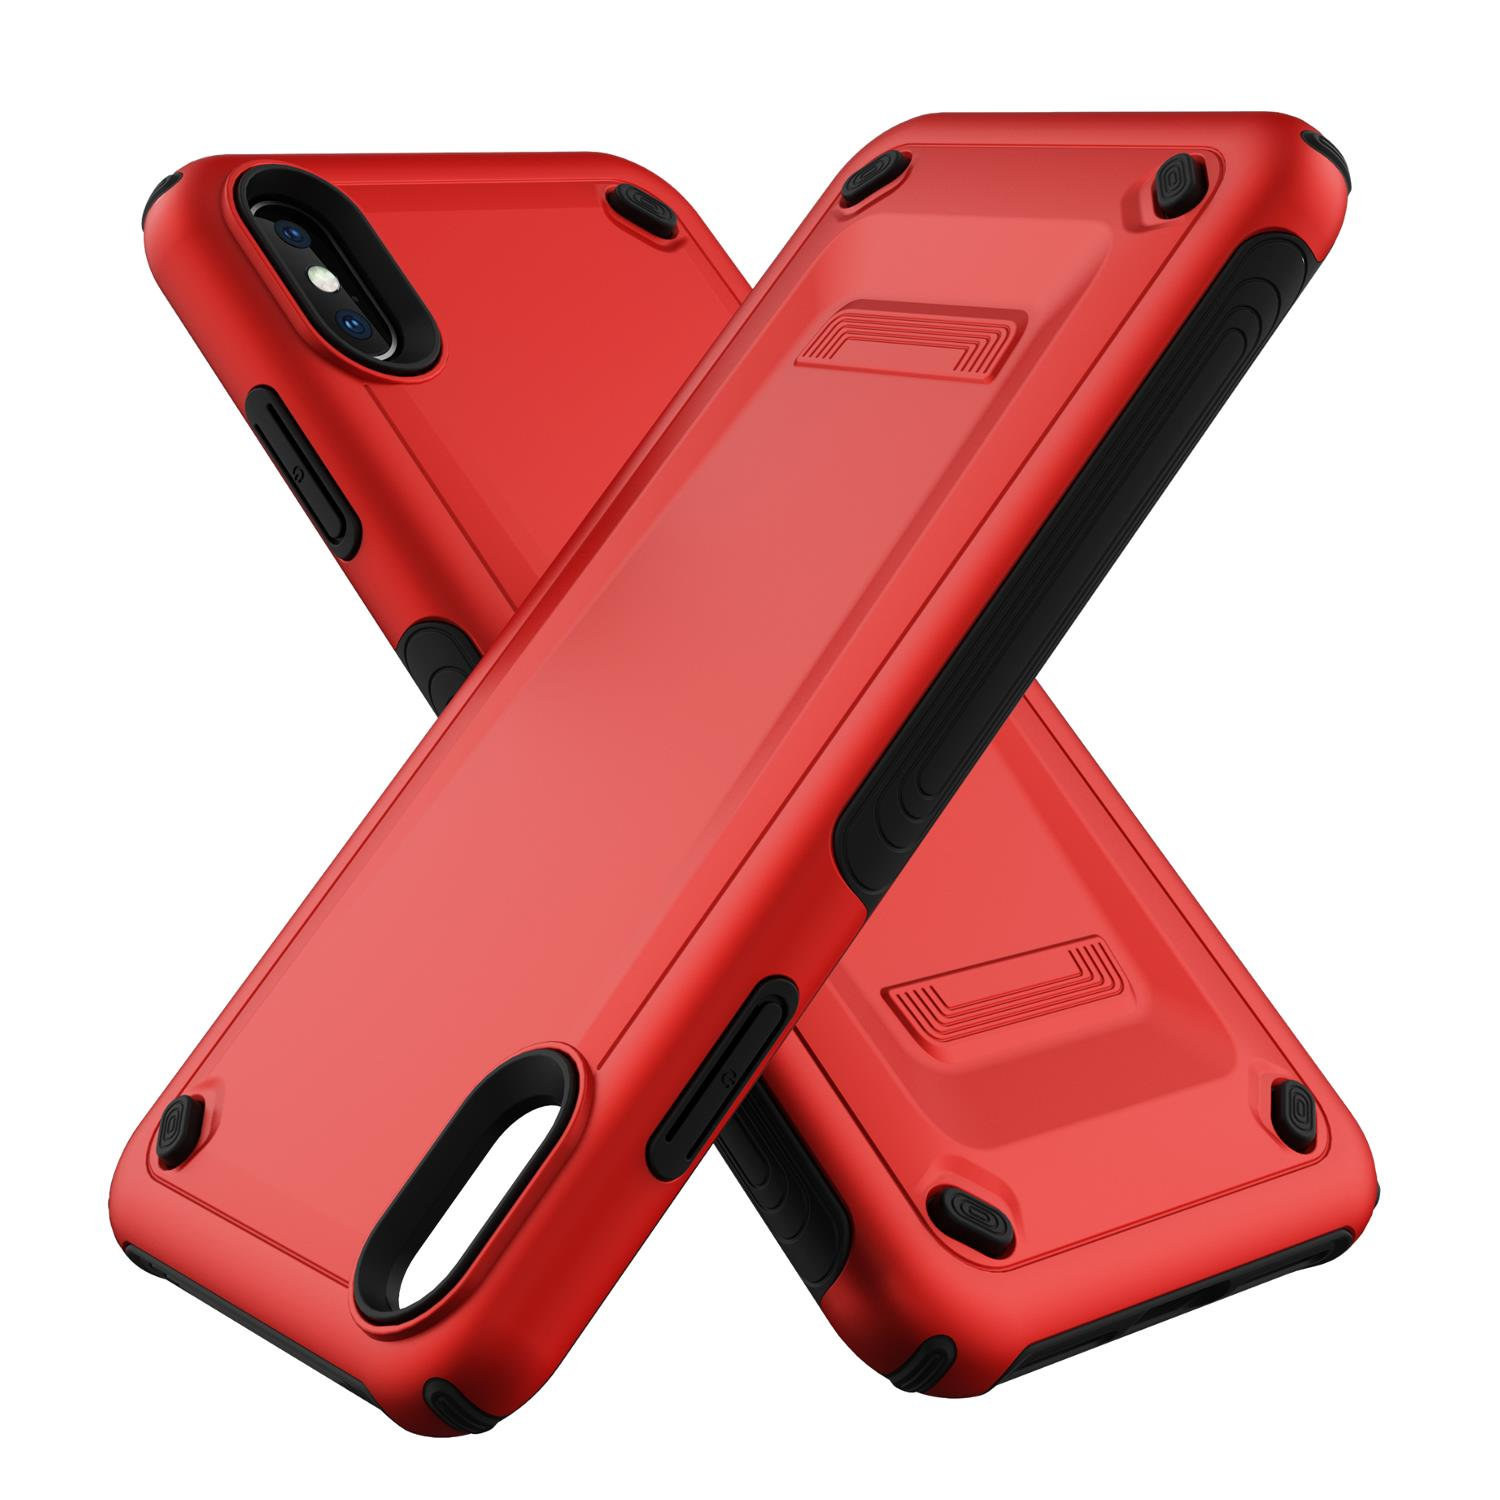 Bakeey Protective Case For iPhone XR/XS/XS Max Armor Shockproof Back Cover